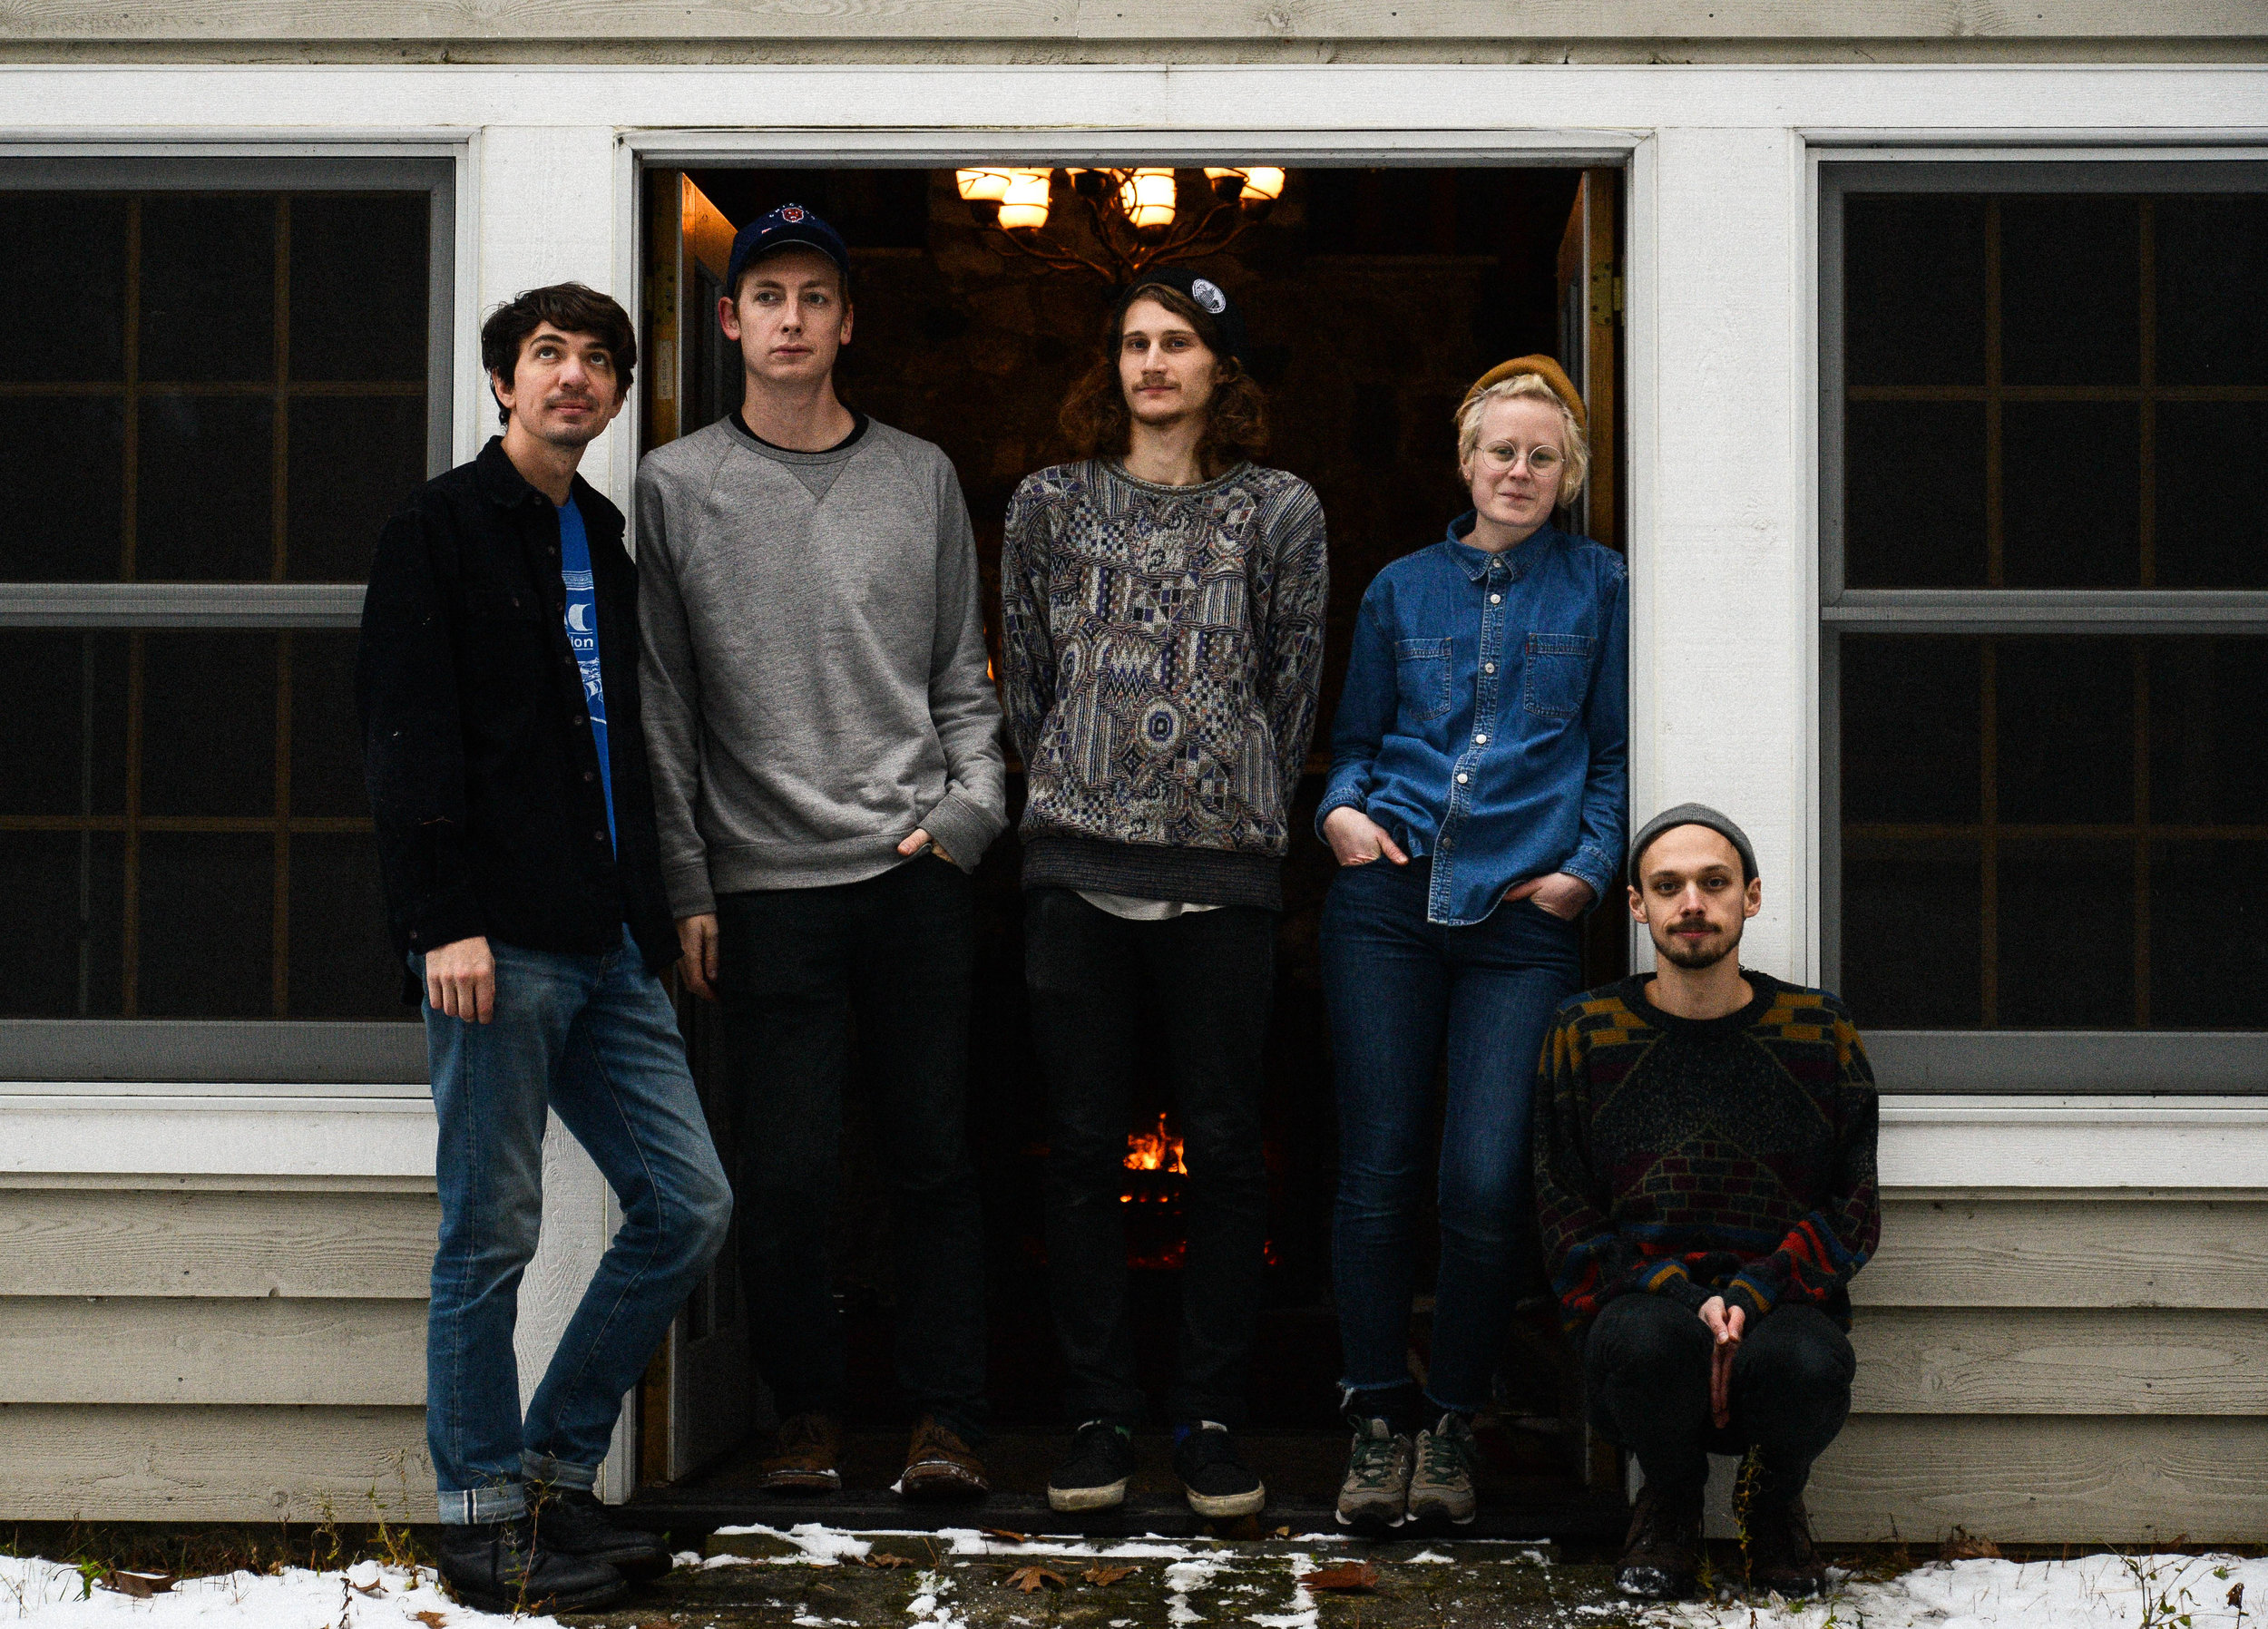 The Edwards are Kyle Maurisak (Nativity Beds), Chris DePorter (Torres), Emma McCall (Moonrise Nation), Stuart MacFadyen (Strange Foliage), and Chris Murphy.